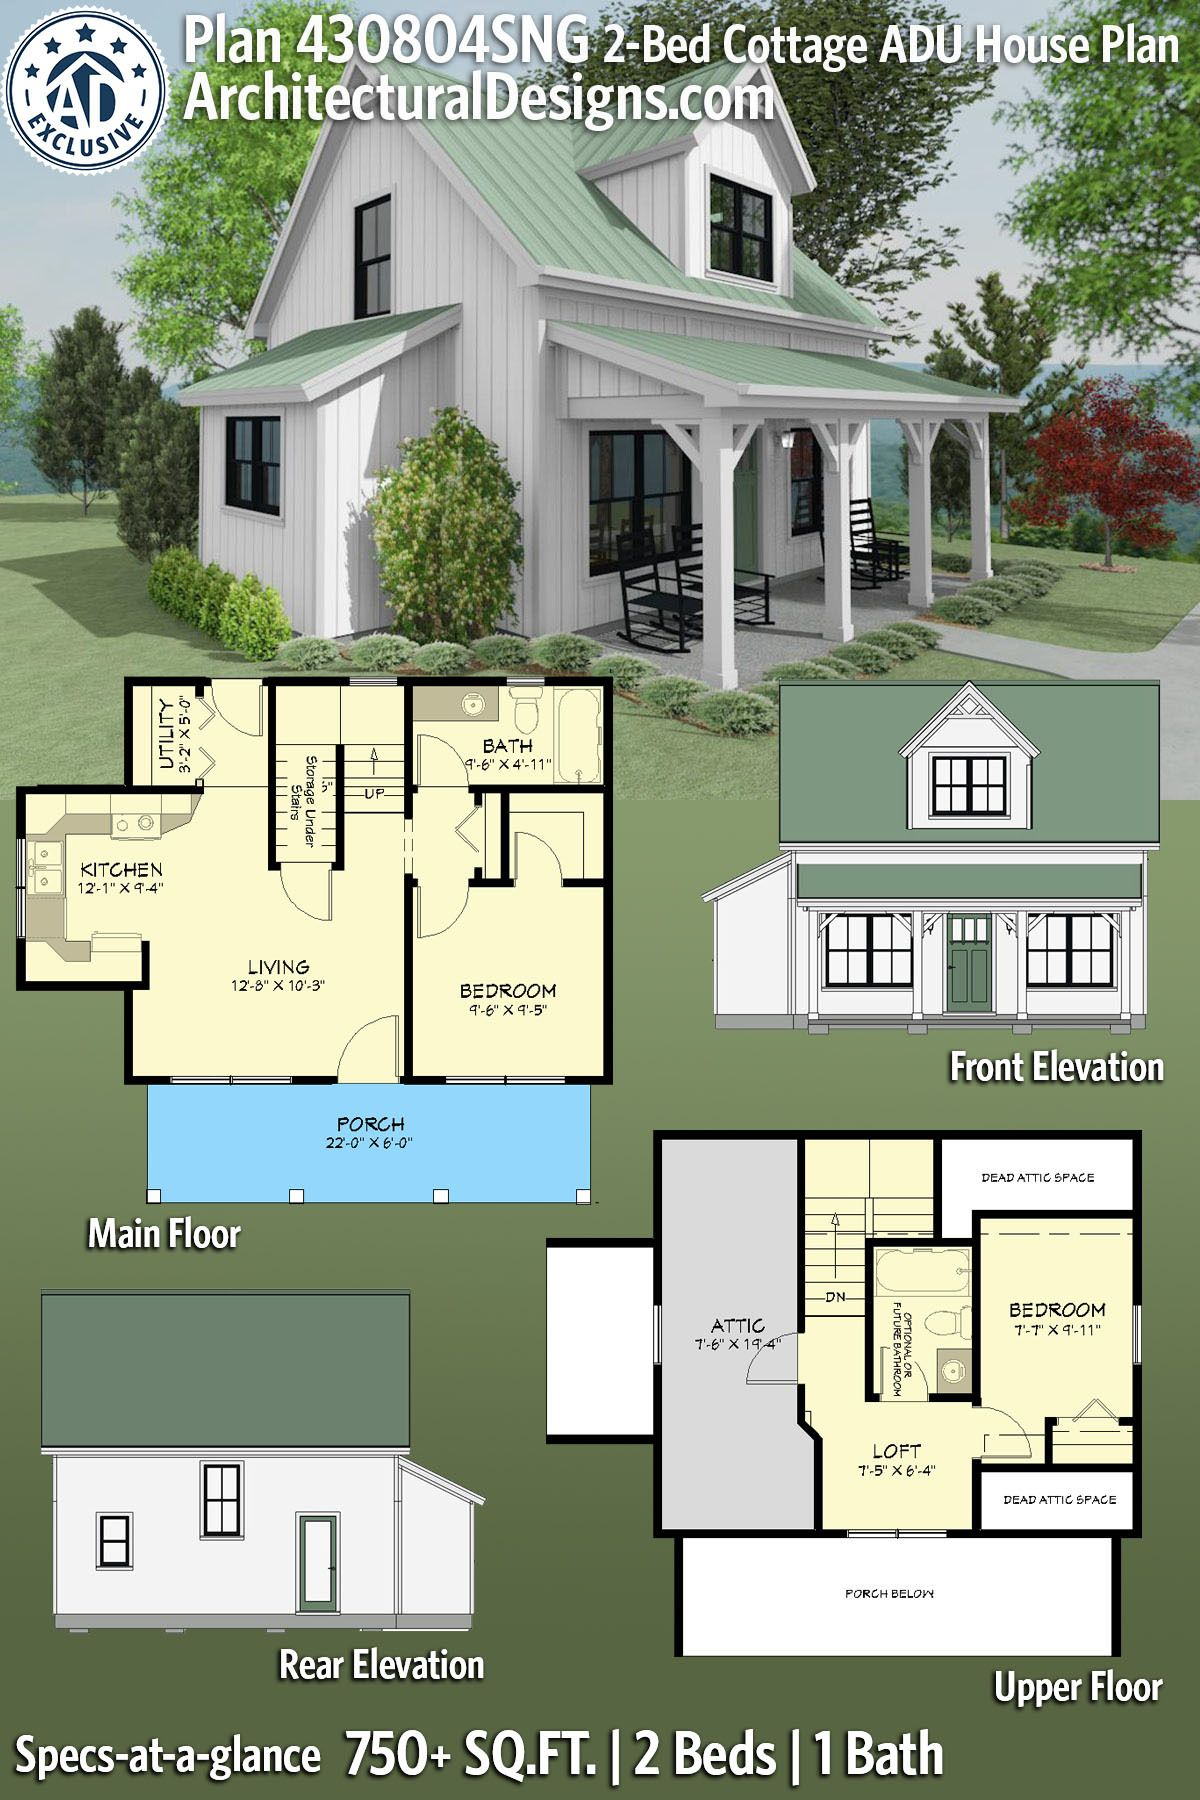 Plan 430804sng Exclusive Small Home Plan With Two Bedrooms In 2020 Sims House Plans Small Home Plan House Plans Farmhouse